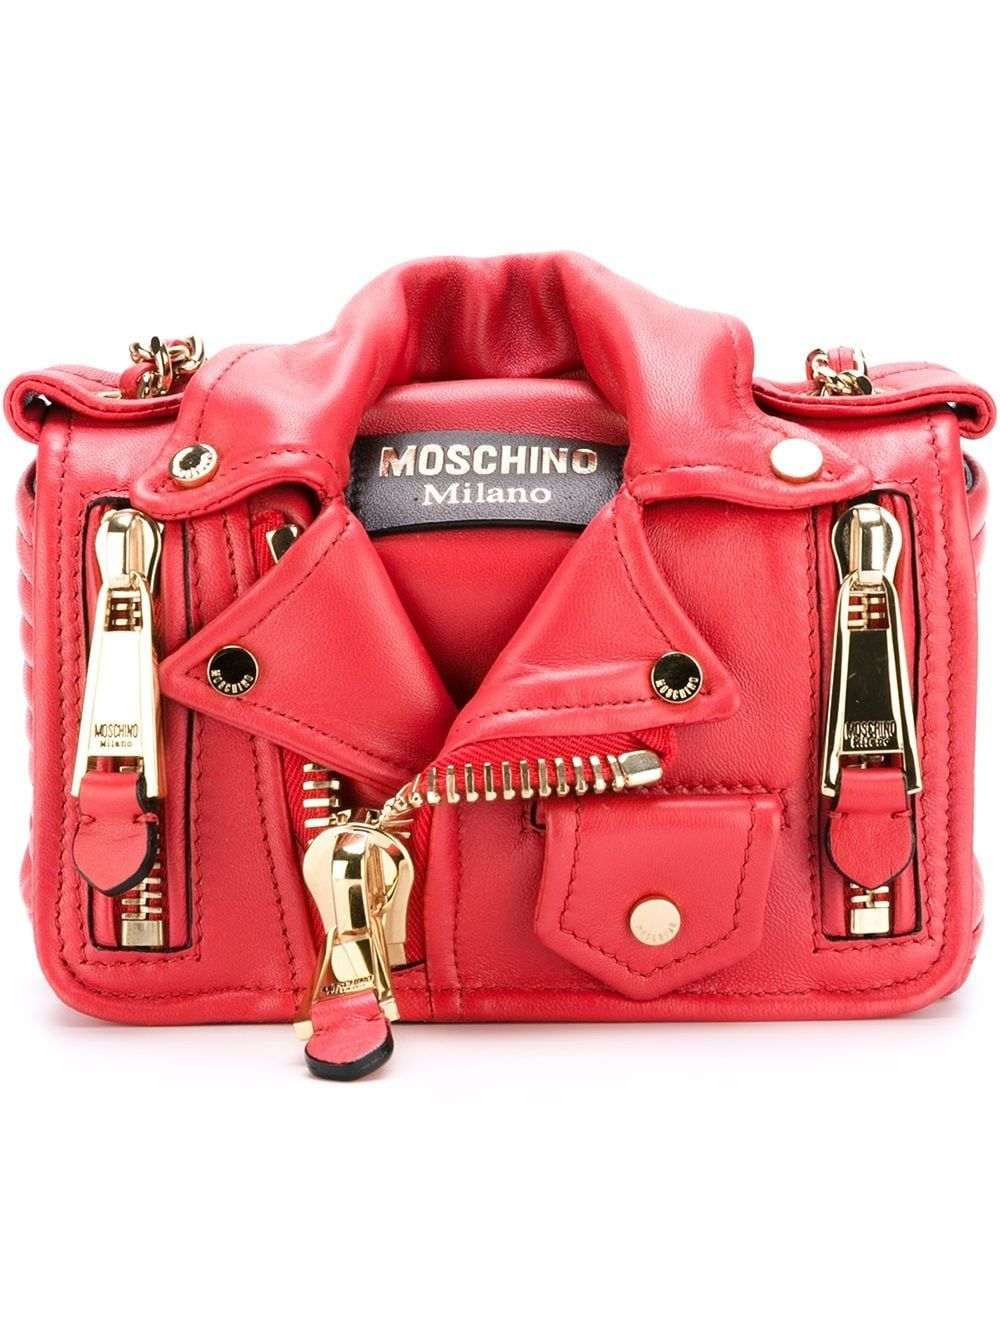 Moschino Leathers MOSCHINO WOMEN'S RED LEATHER SHOULDER BAG